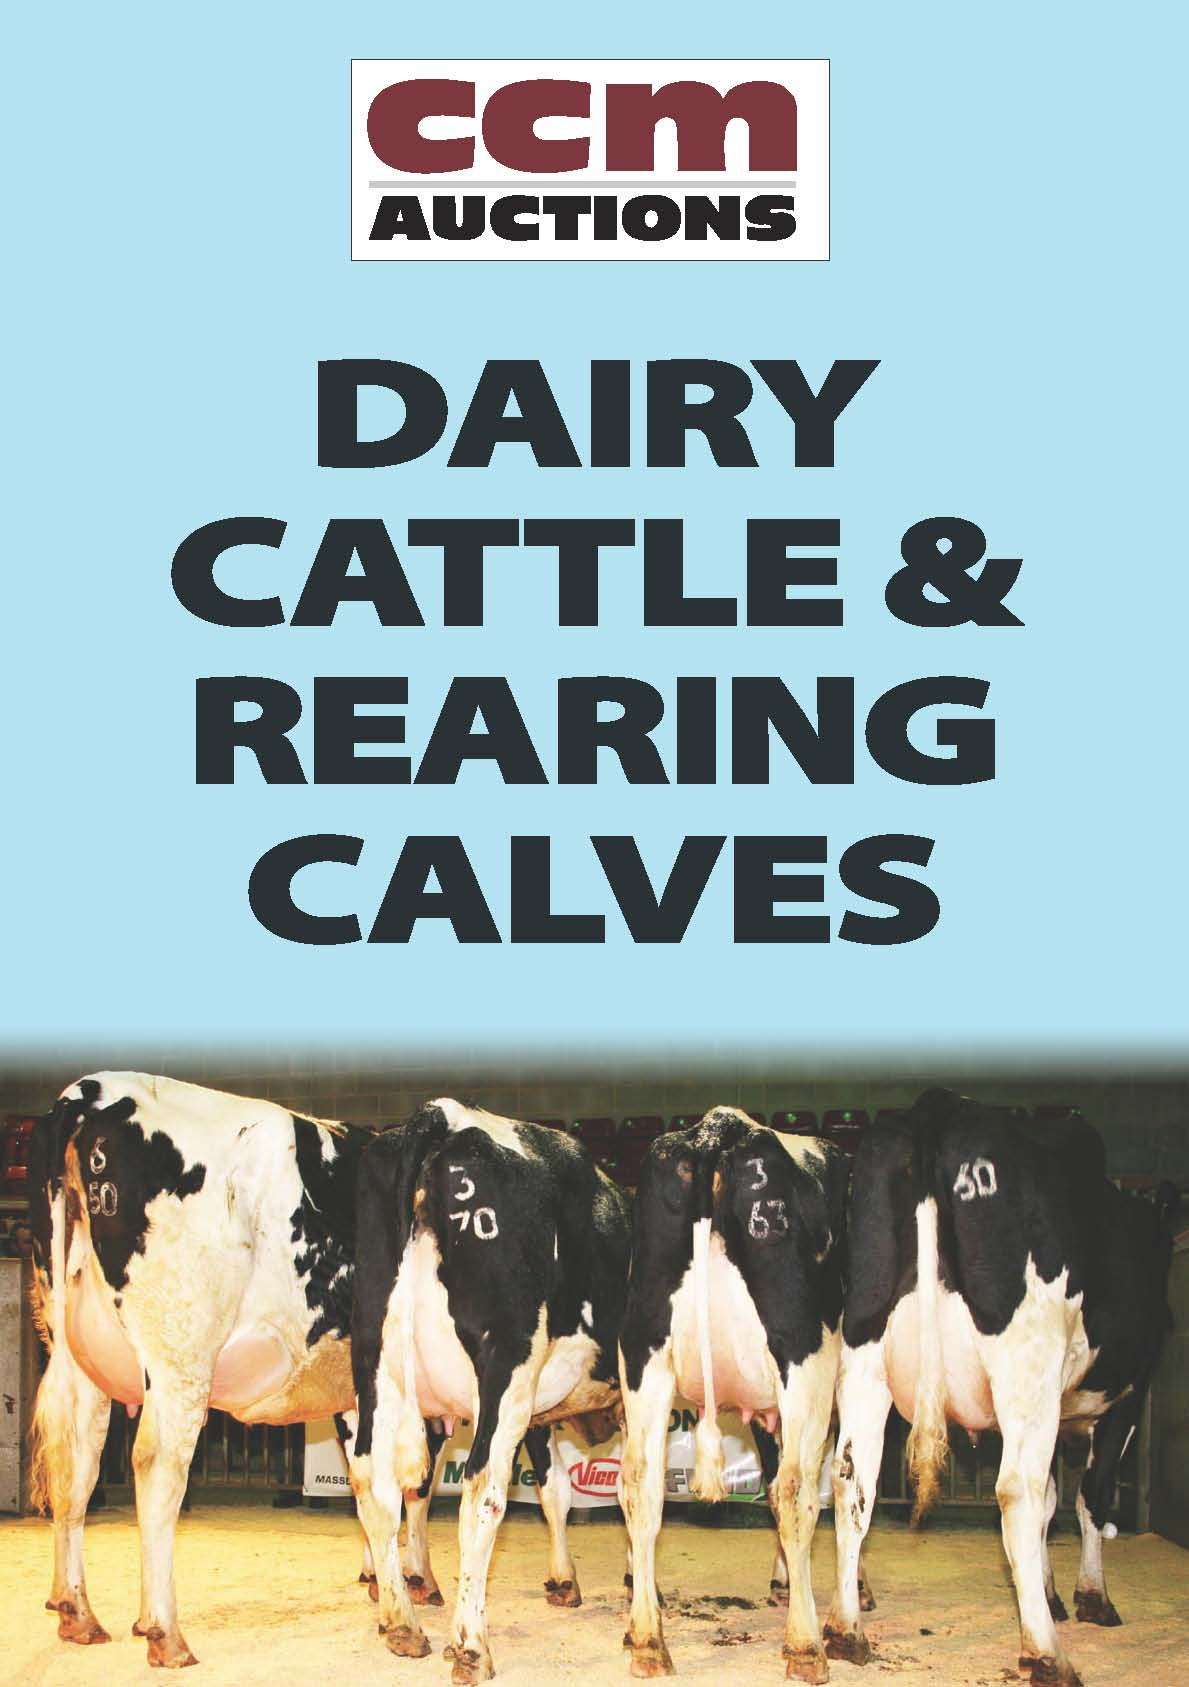 CRAVEN DAIRY AUCTION - MONDAY 10TH AUGUST 2020